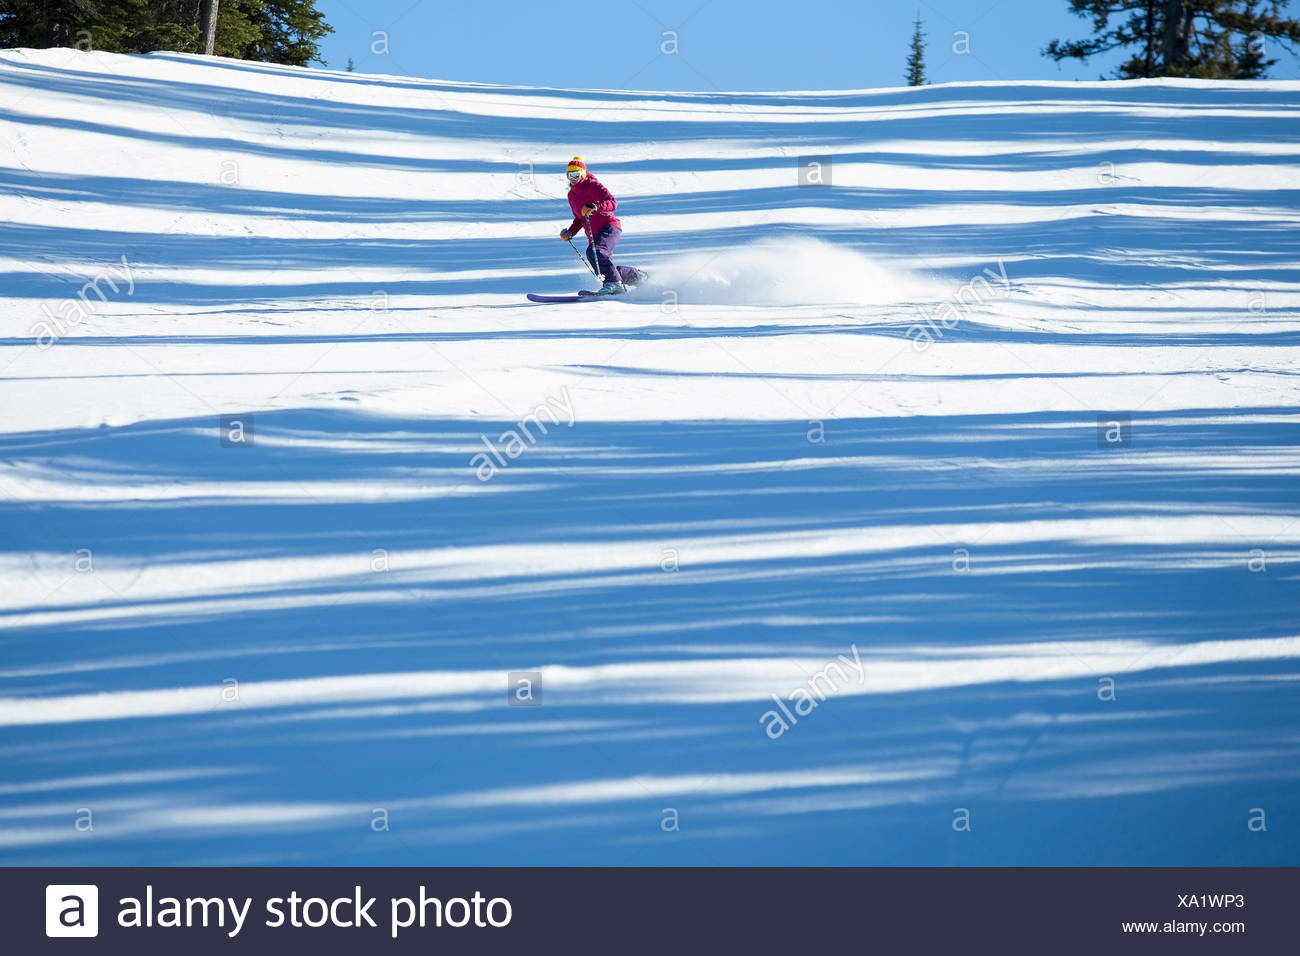 Woman skiing downhill - Stock Image